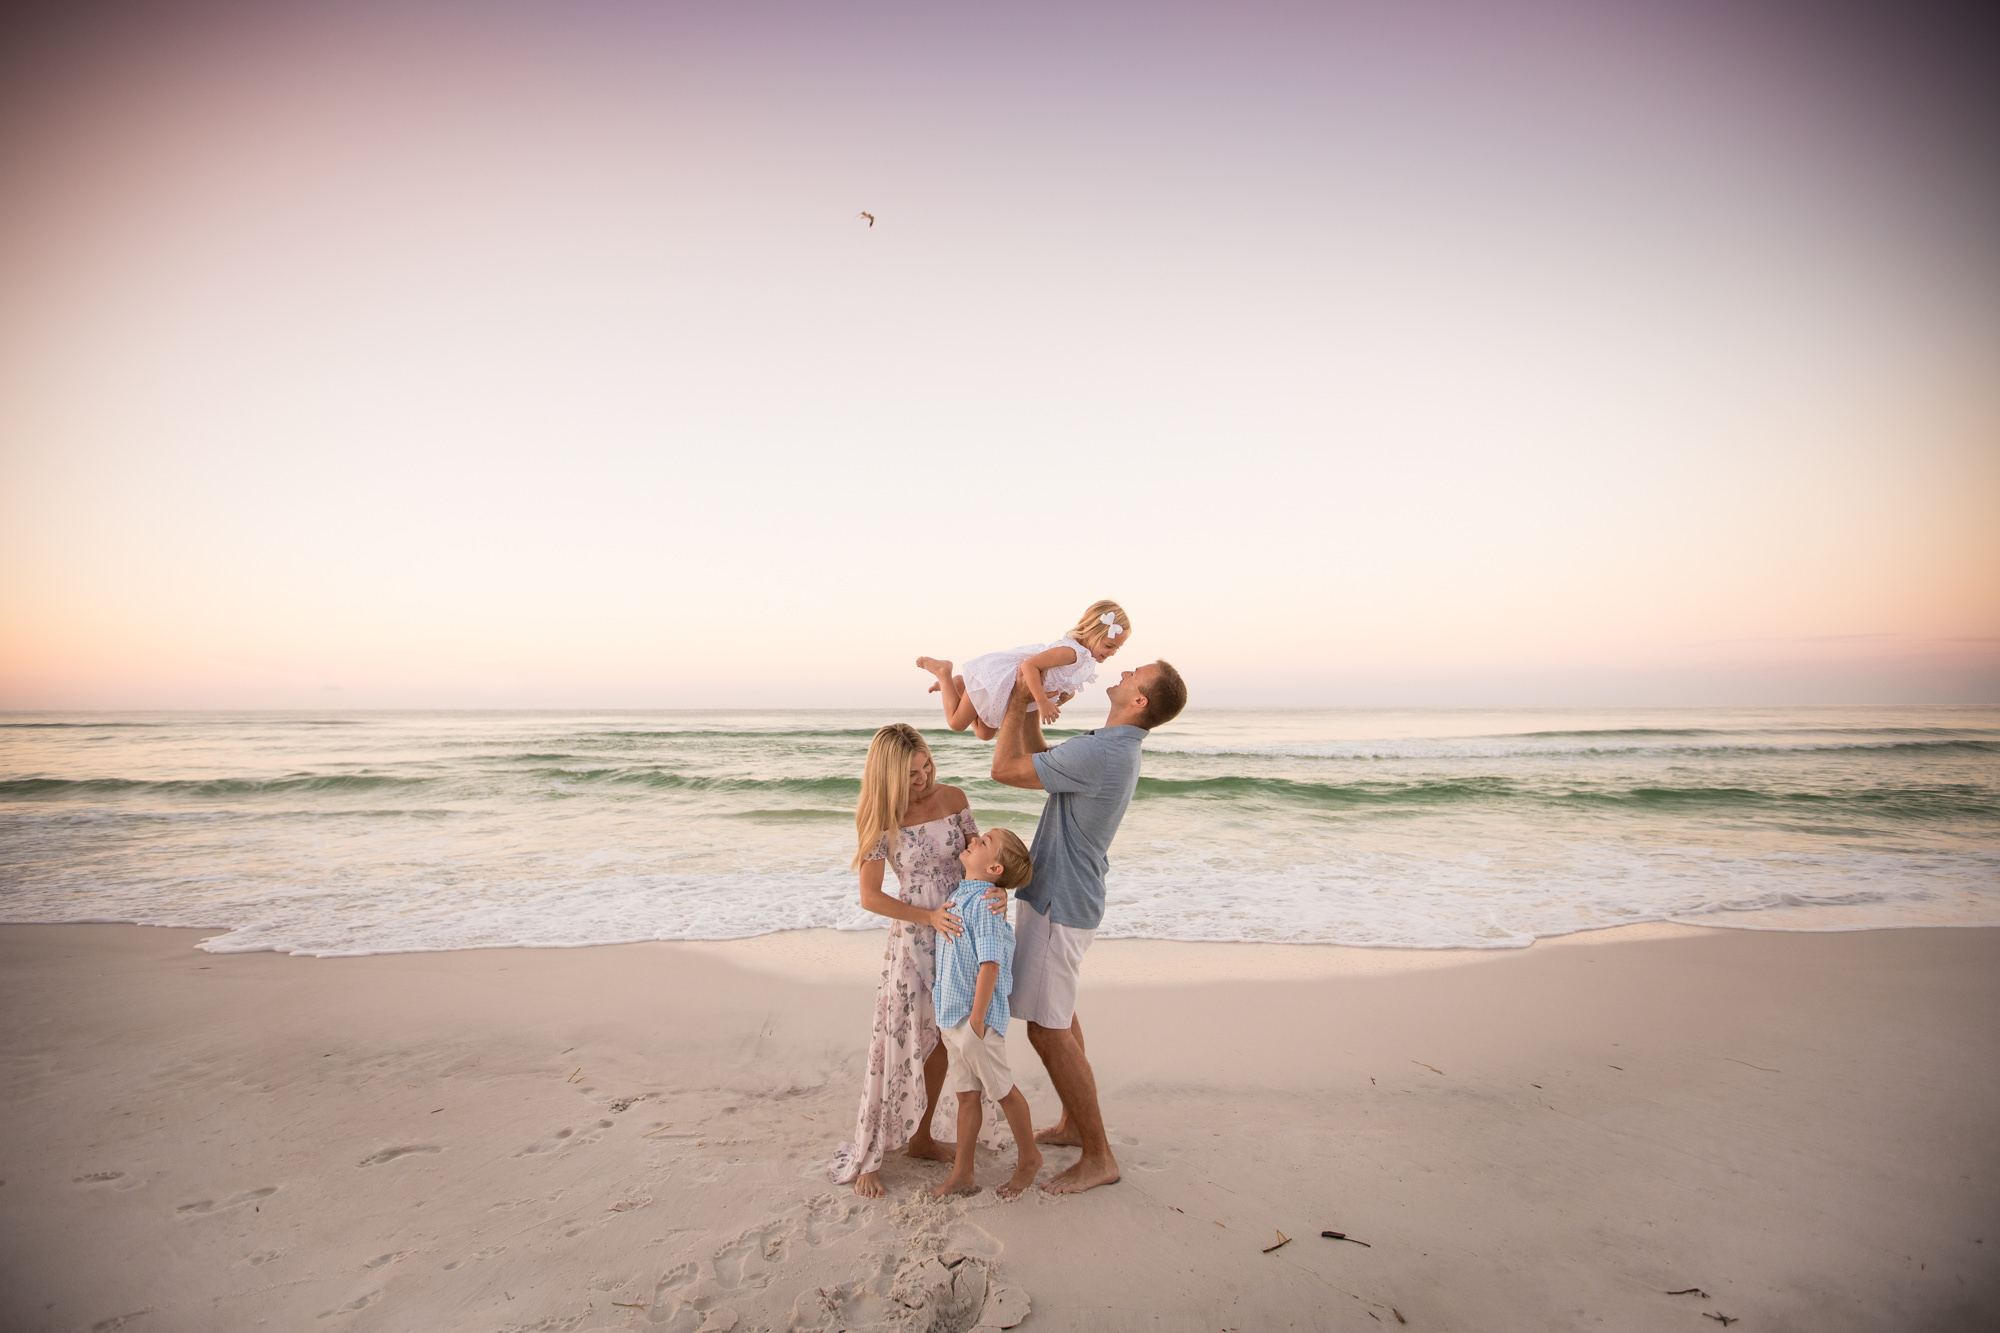 Family photographed on Destin beach on sunrise